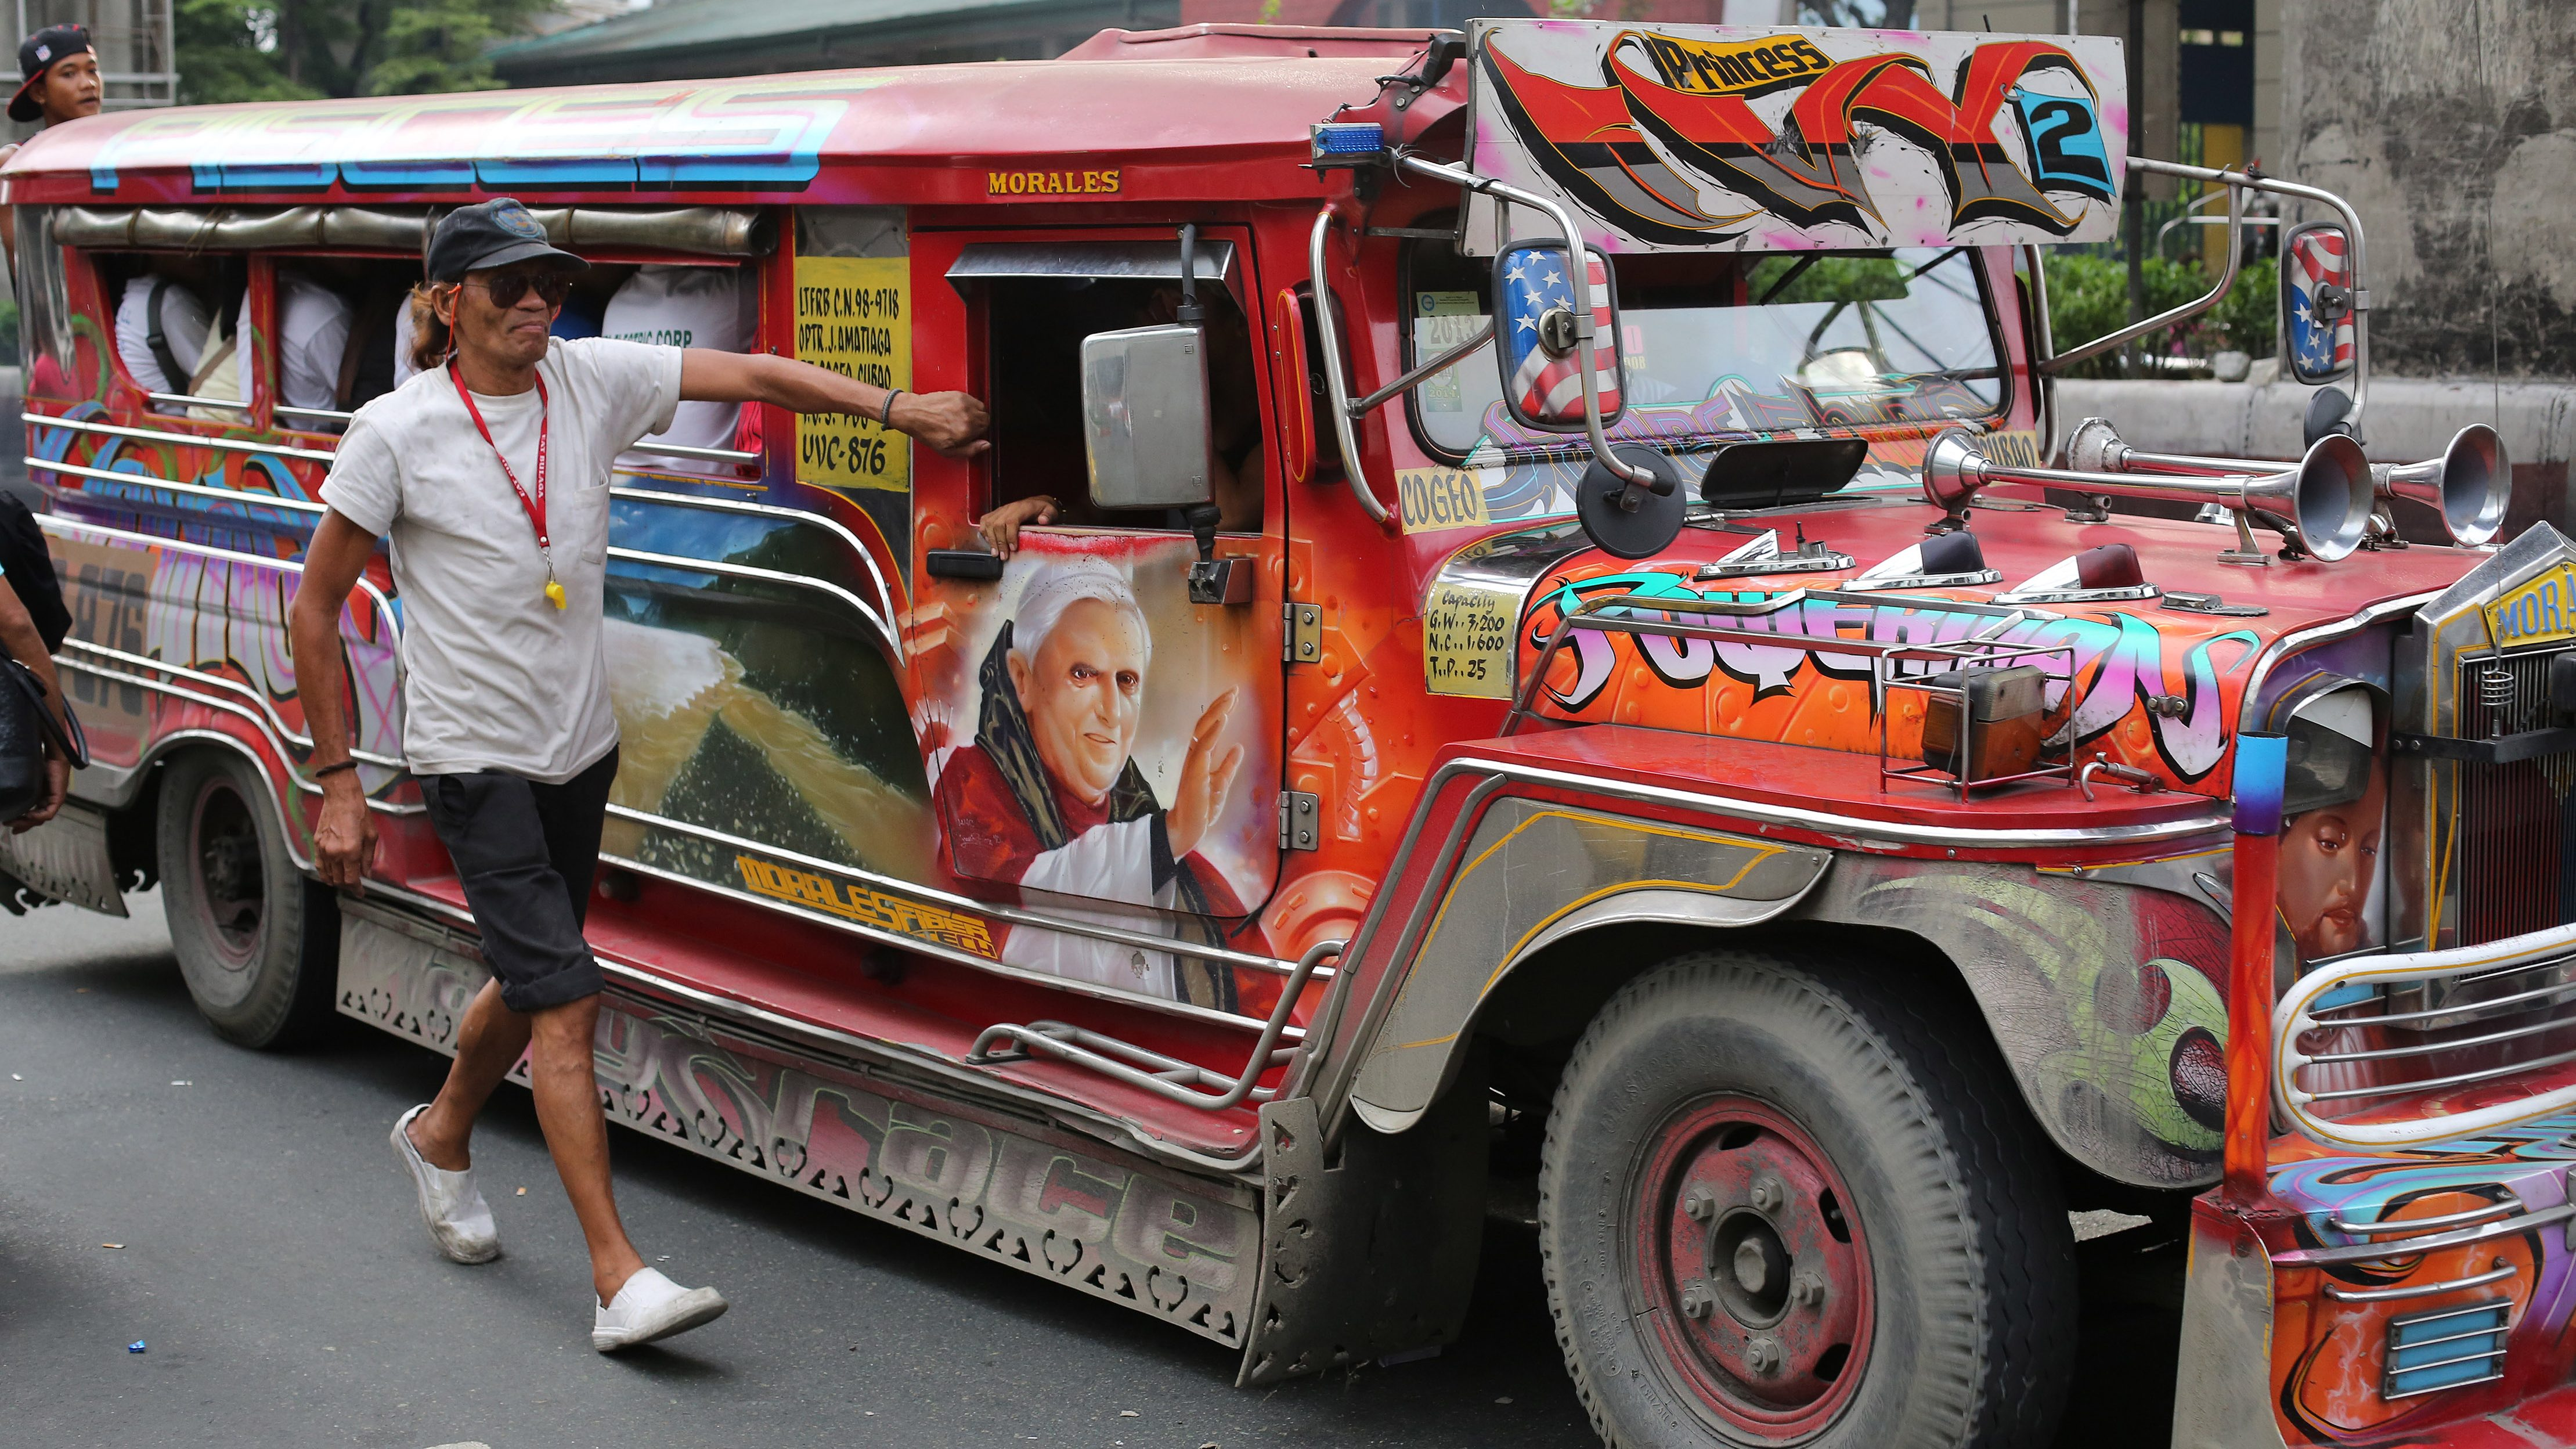 A painting of Pope Emeritus Benedict XVI from Germany decorates a jeepney as a man walks beside it to call for passengers in suburban Quezon City, north of Manila, Philippines on Tuesday, July 8, 2014. Passenger jeepneys are popular means of public transportation in the country. They come in various colors and are sometimes decorated with paintings of religious images and icons in Asia's most prominent Roman Catholic nation.